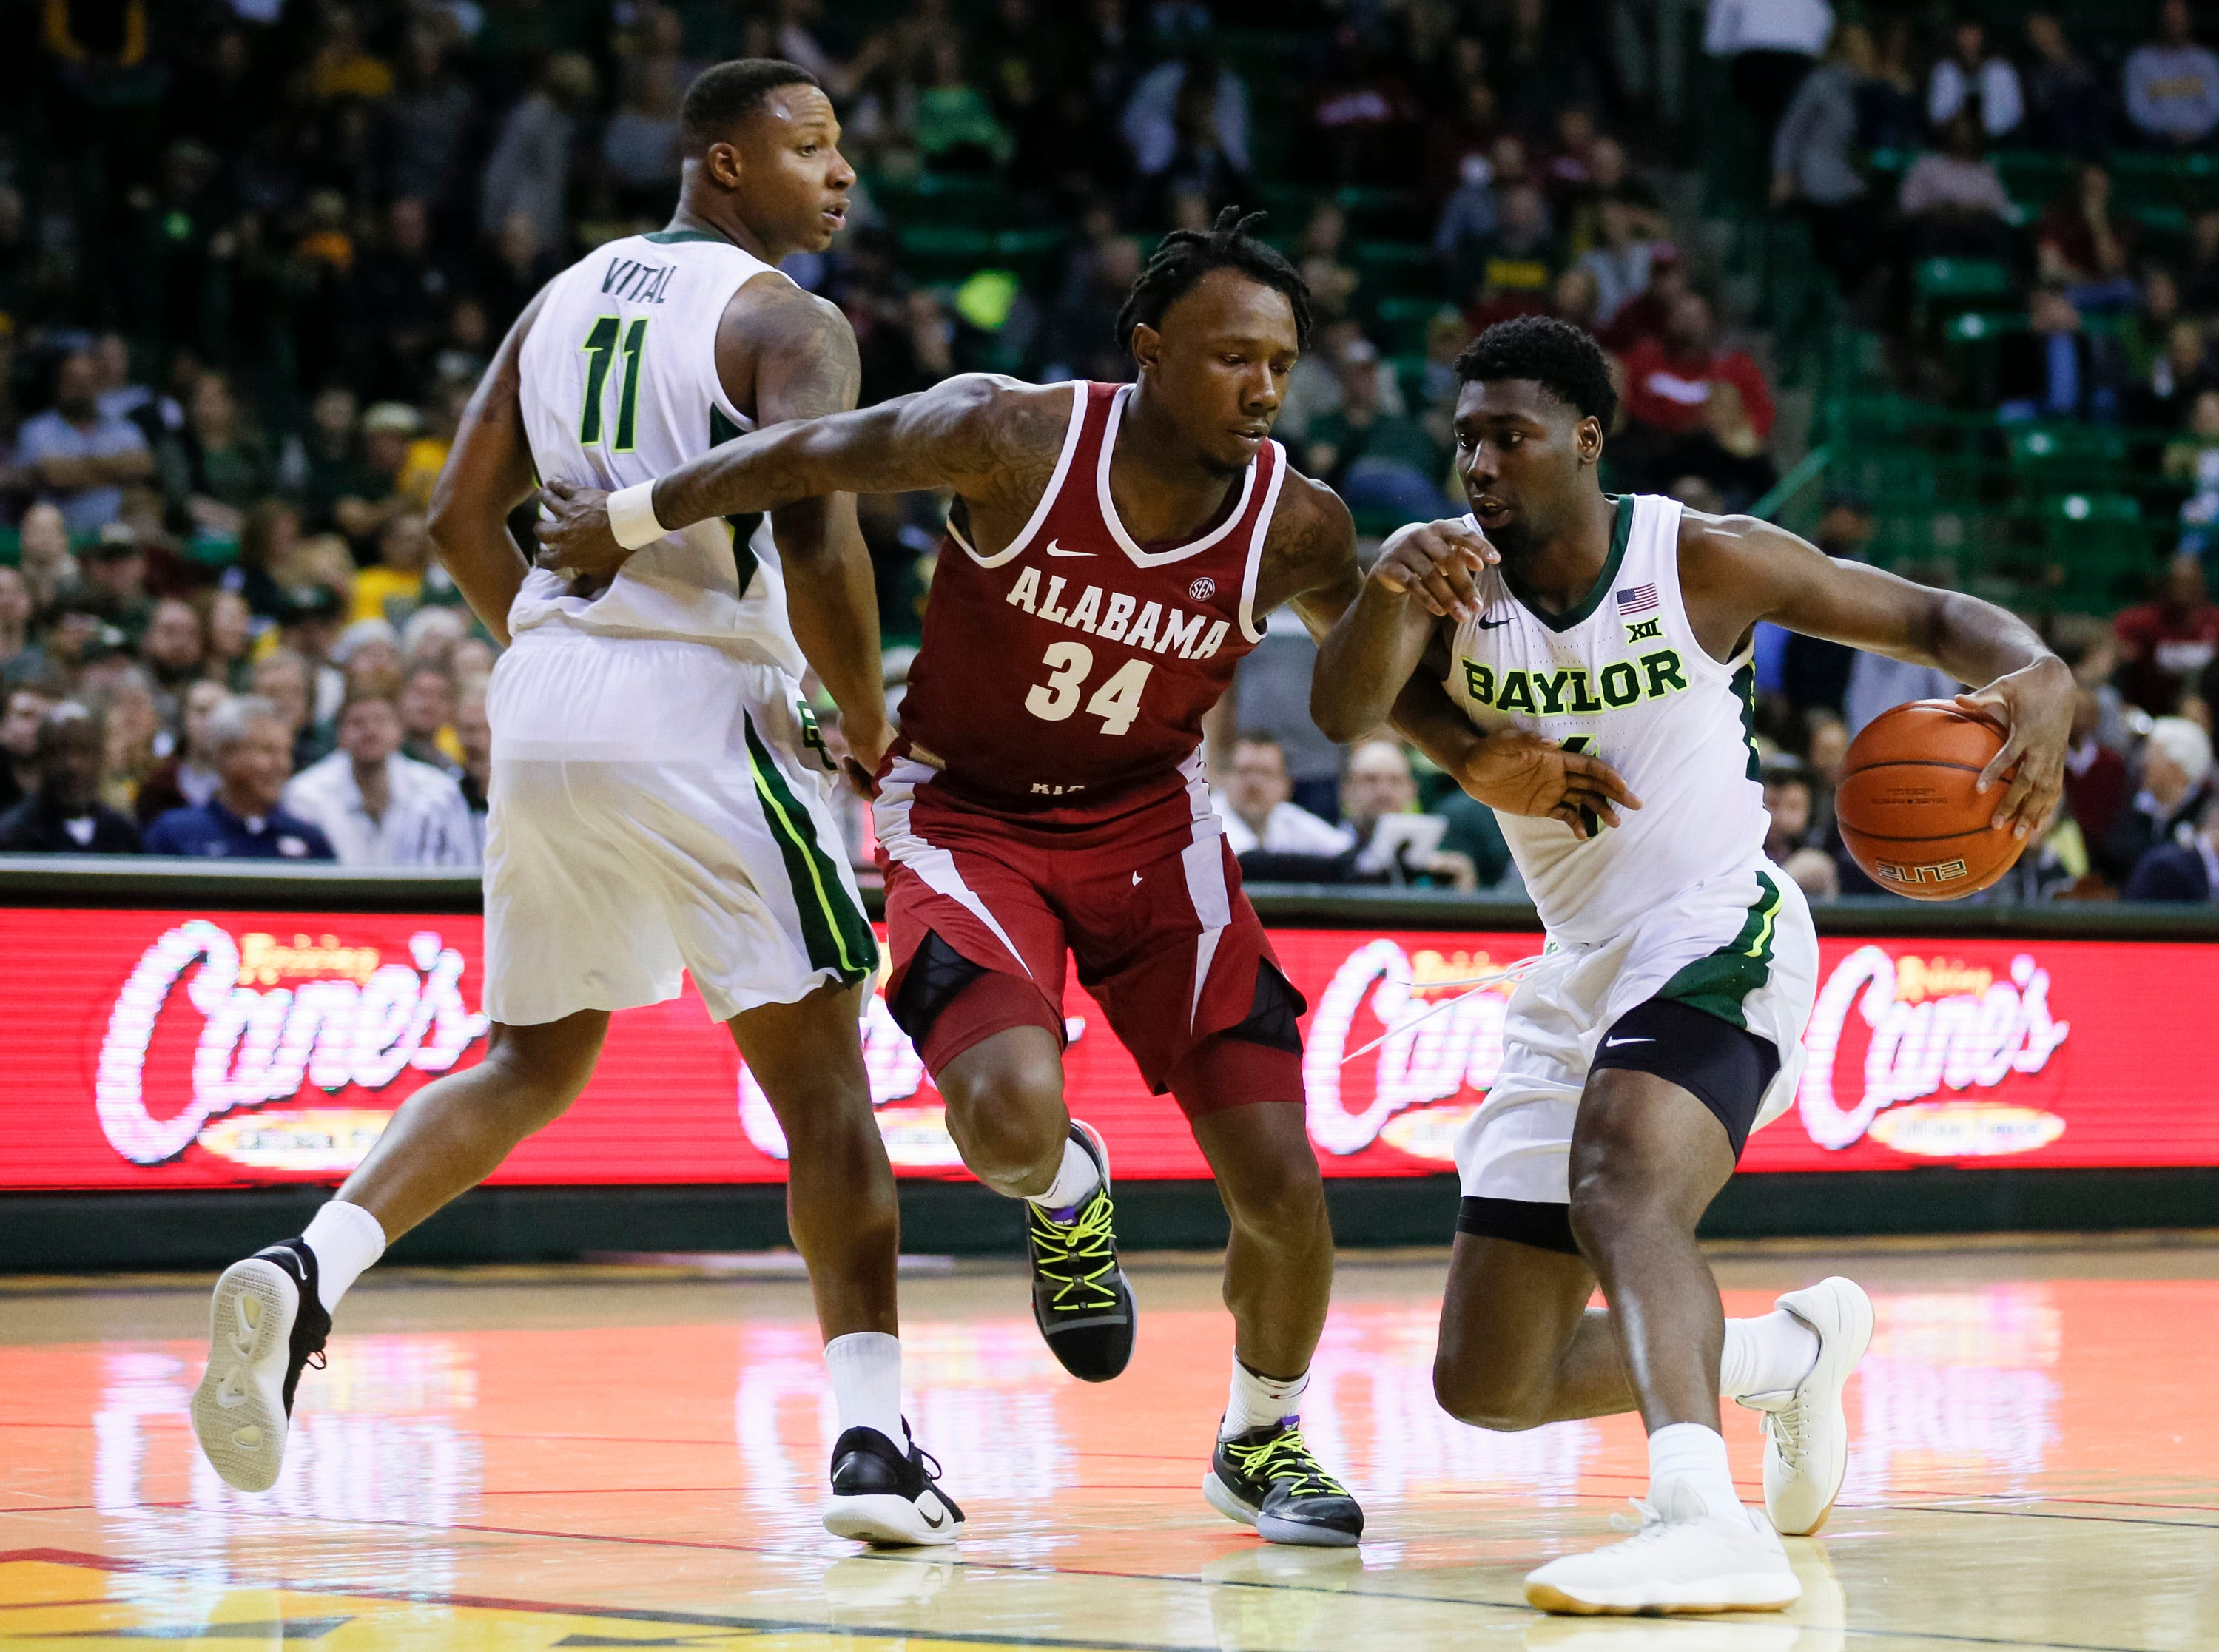 Jan 26, 2019; Waco, TX, USA; Baylor Bears guard Mario Kegler (4) dribbles the all around Bears guard Mark Vital (11) and Alabama Crimson Tide guard Tevin Mack (34) during the second half at Ferrell Center. Mandatory Credit: Ray Carlin-USA TODAY Sports